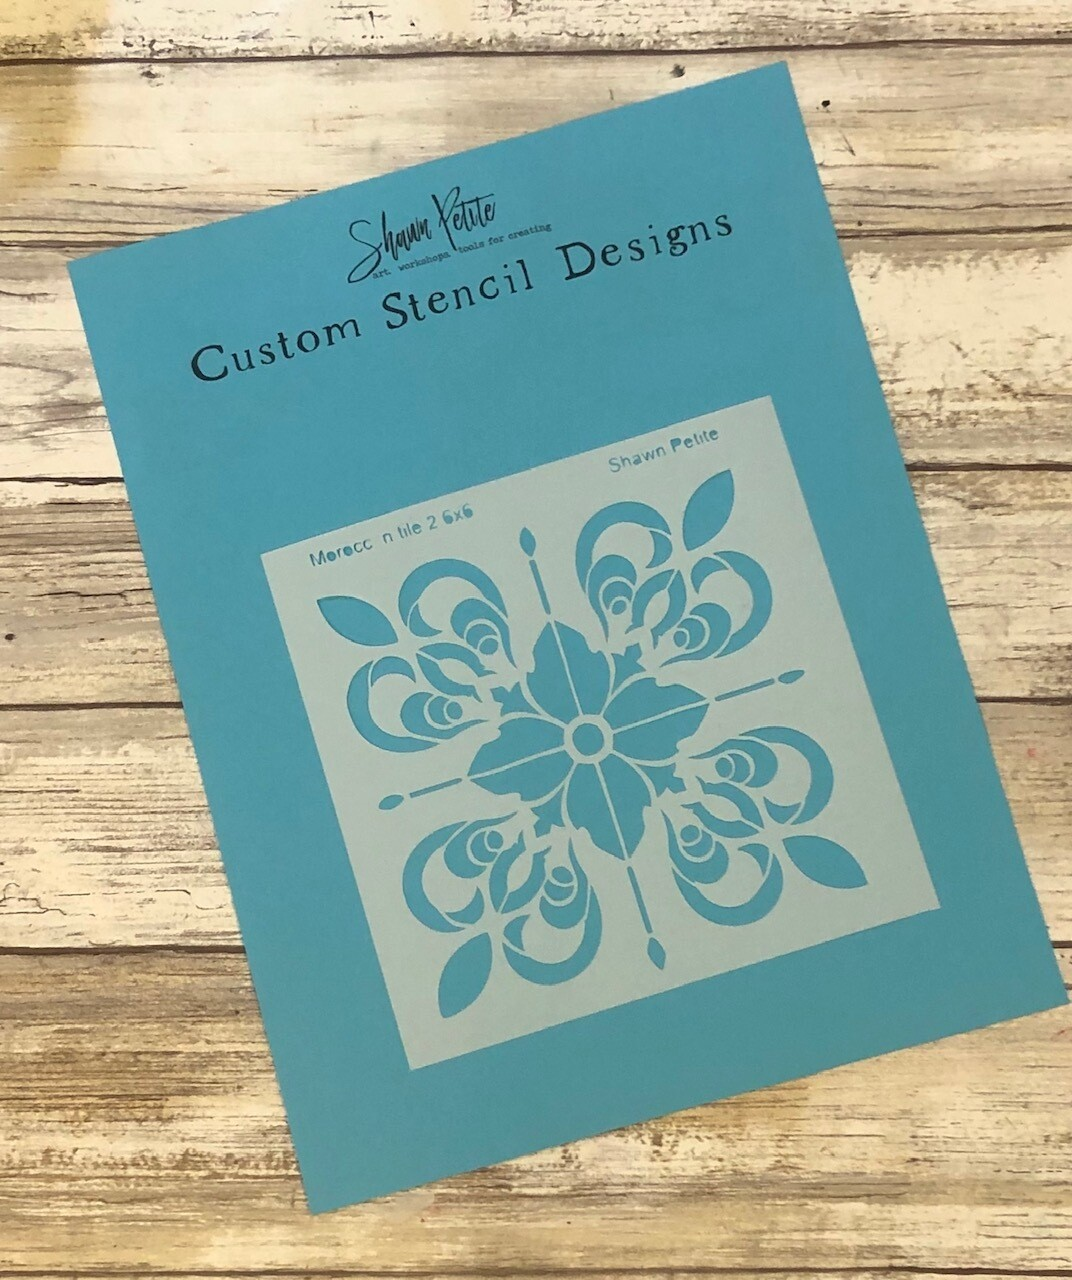 Moroccan Tiles 2 6x6 clearance stencil